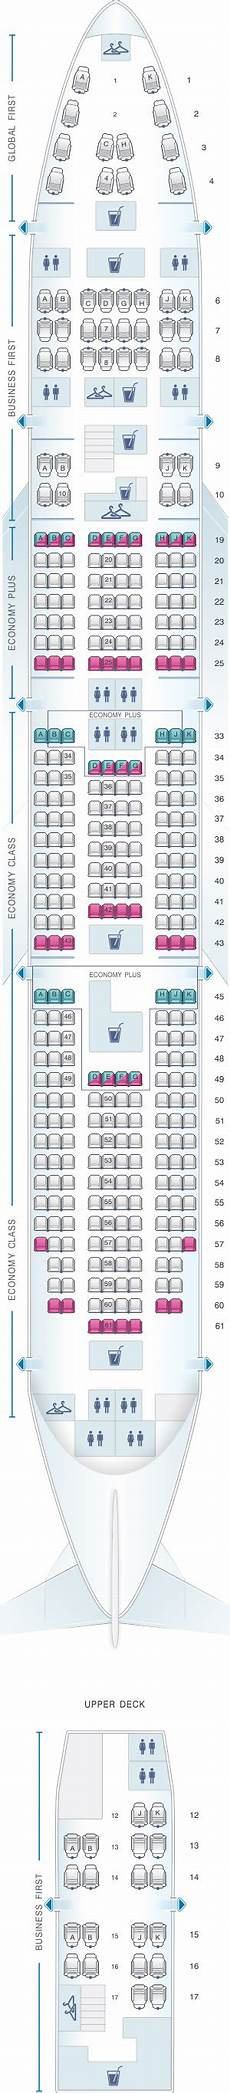 747 400 Seating Chart United Airlines Seat Map United Airlines Boeing B747 400 Seatmaestro